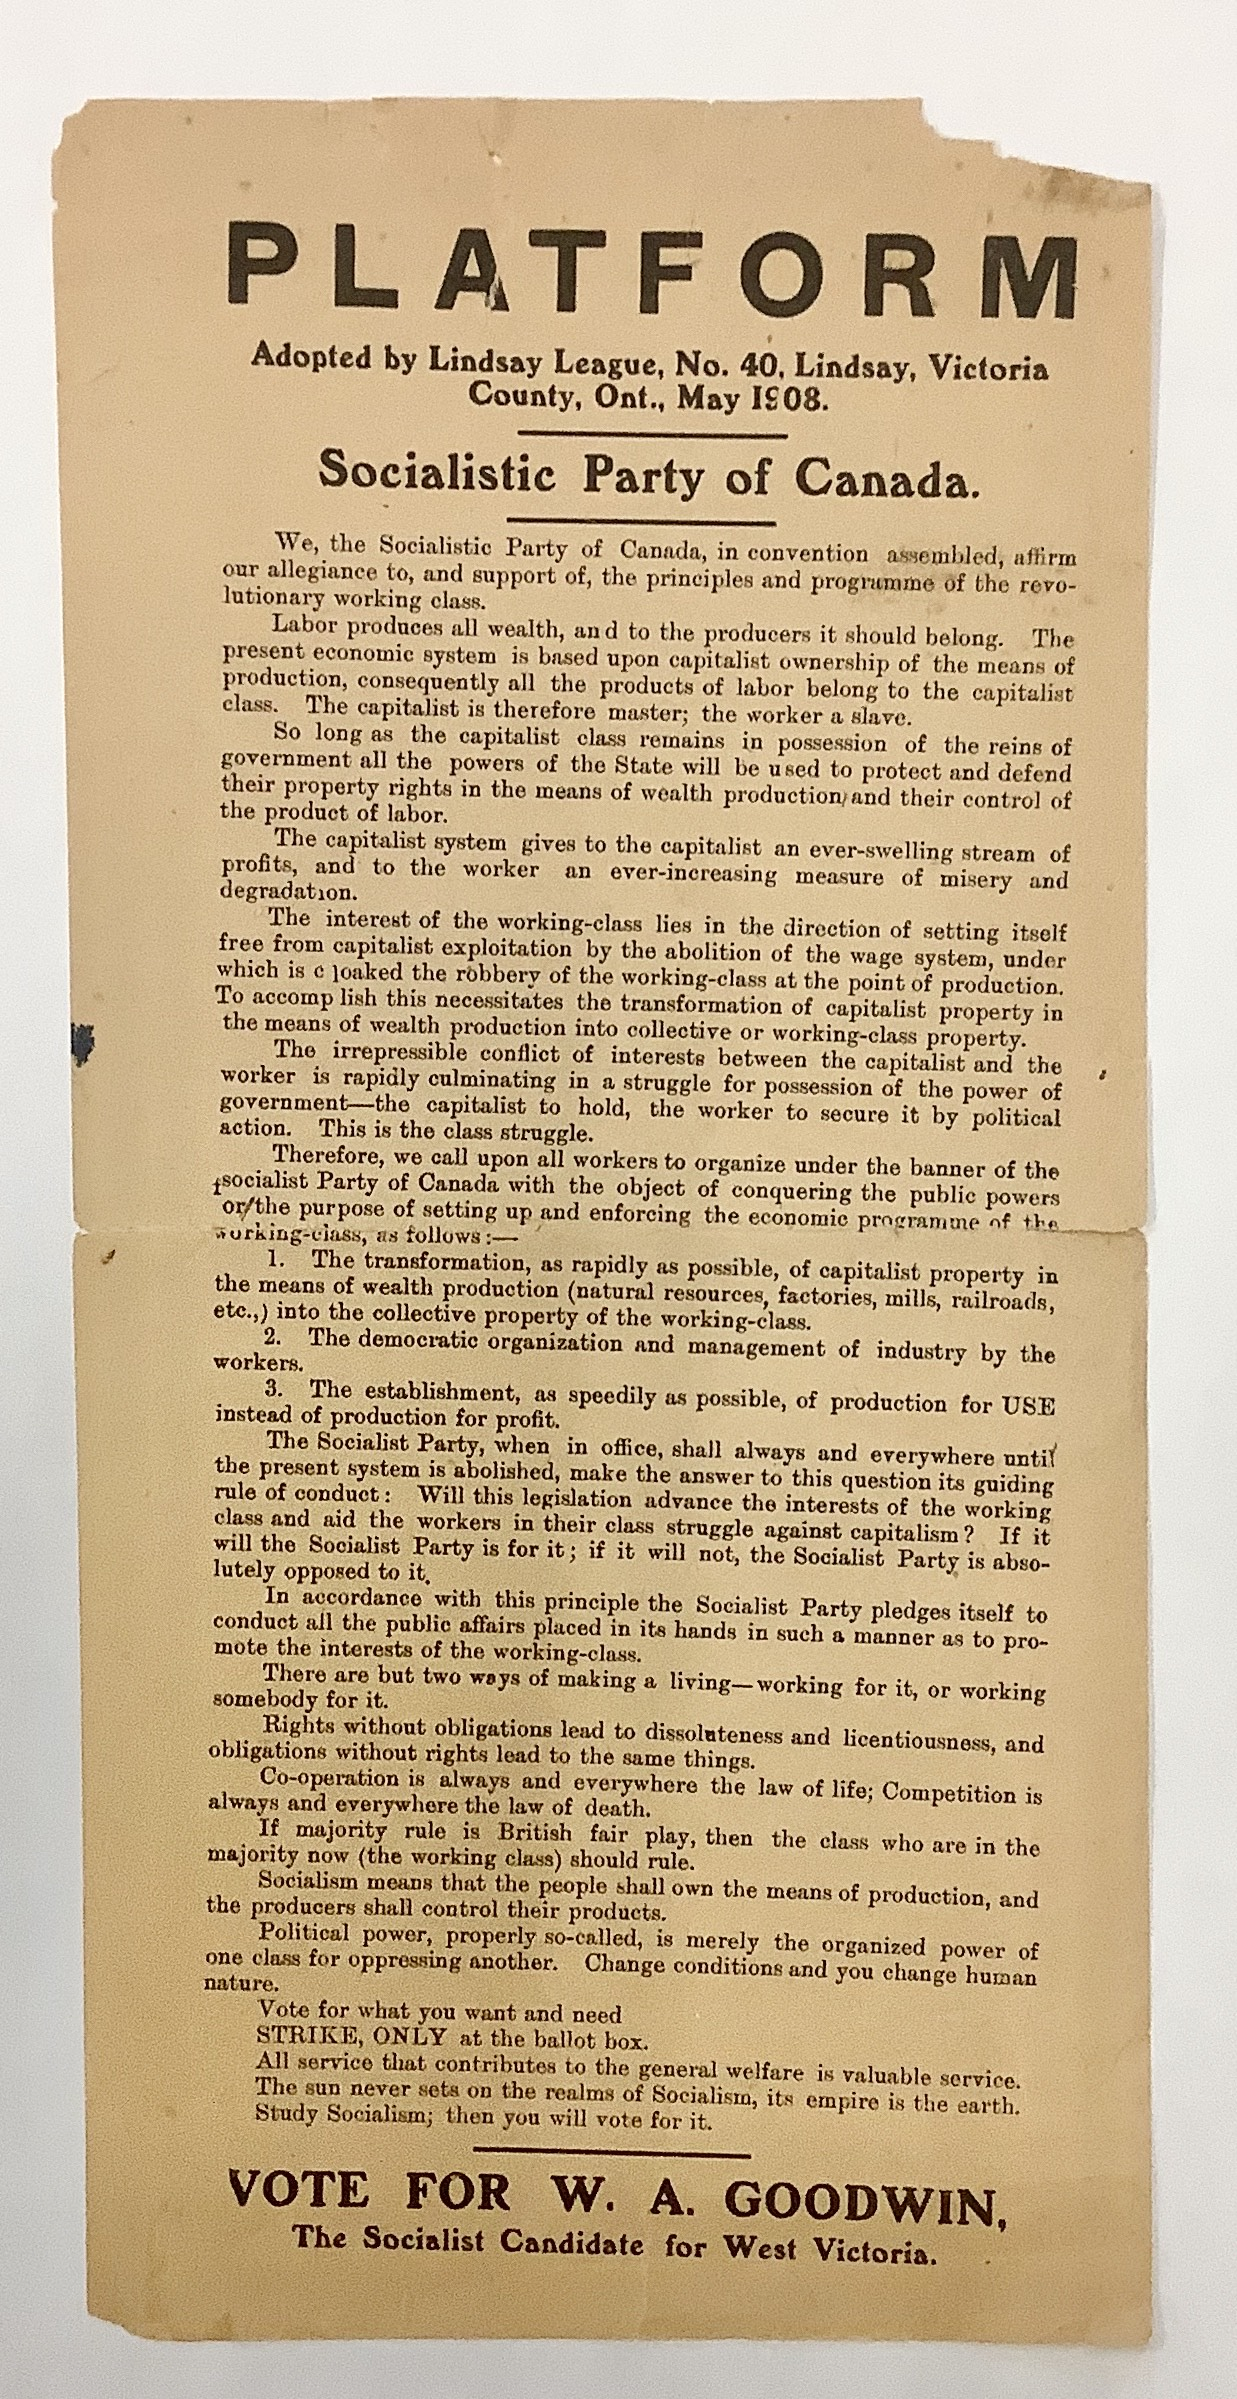 Image of political document in black-and-white text